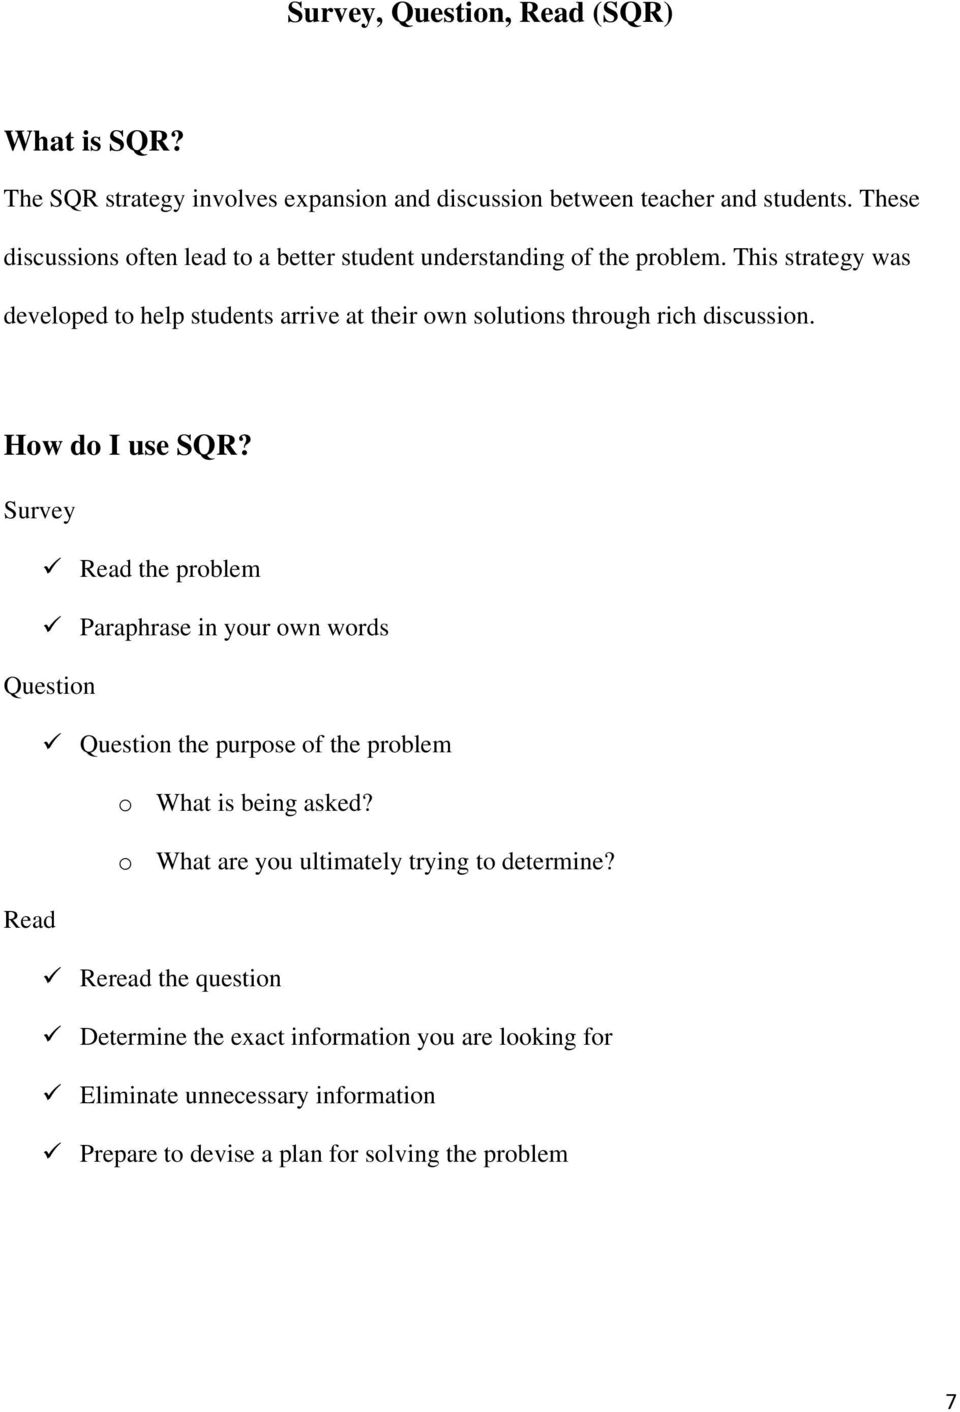 This strategy was developed to help students arrive at their own solutions through rich discussion. How do I use SQR?